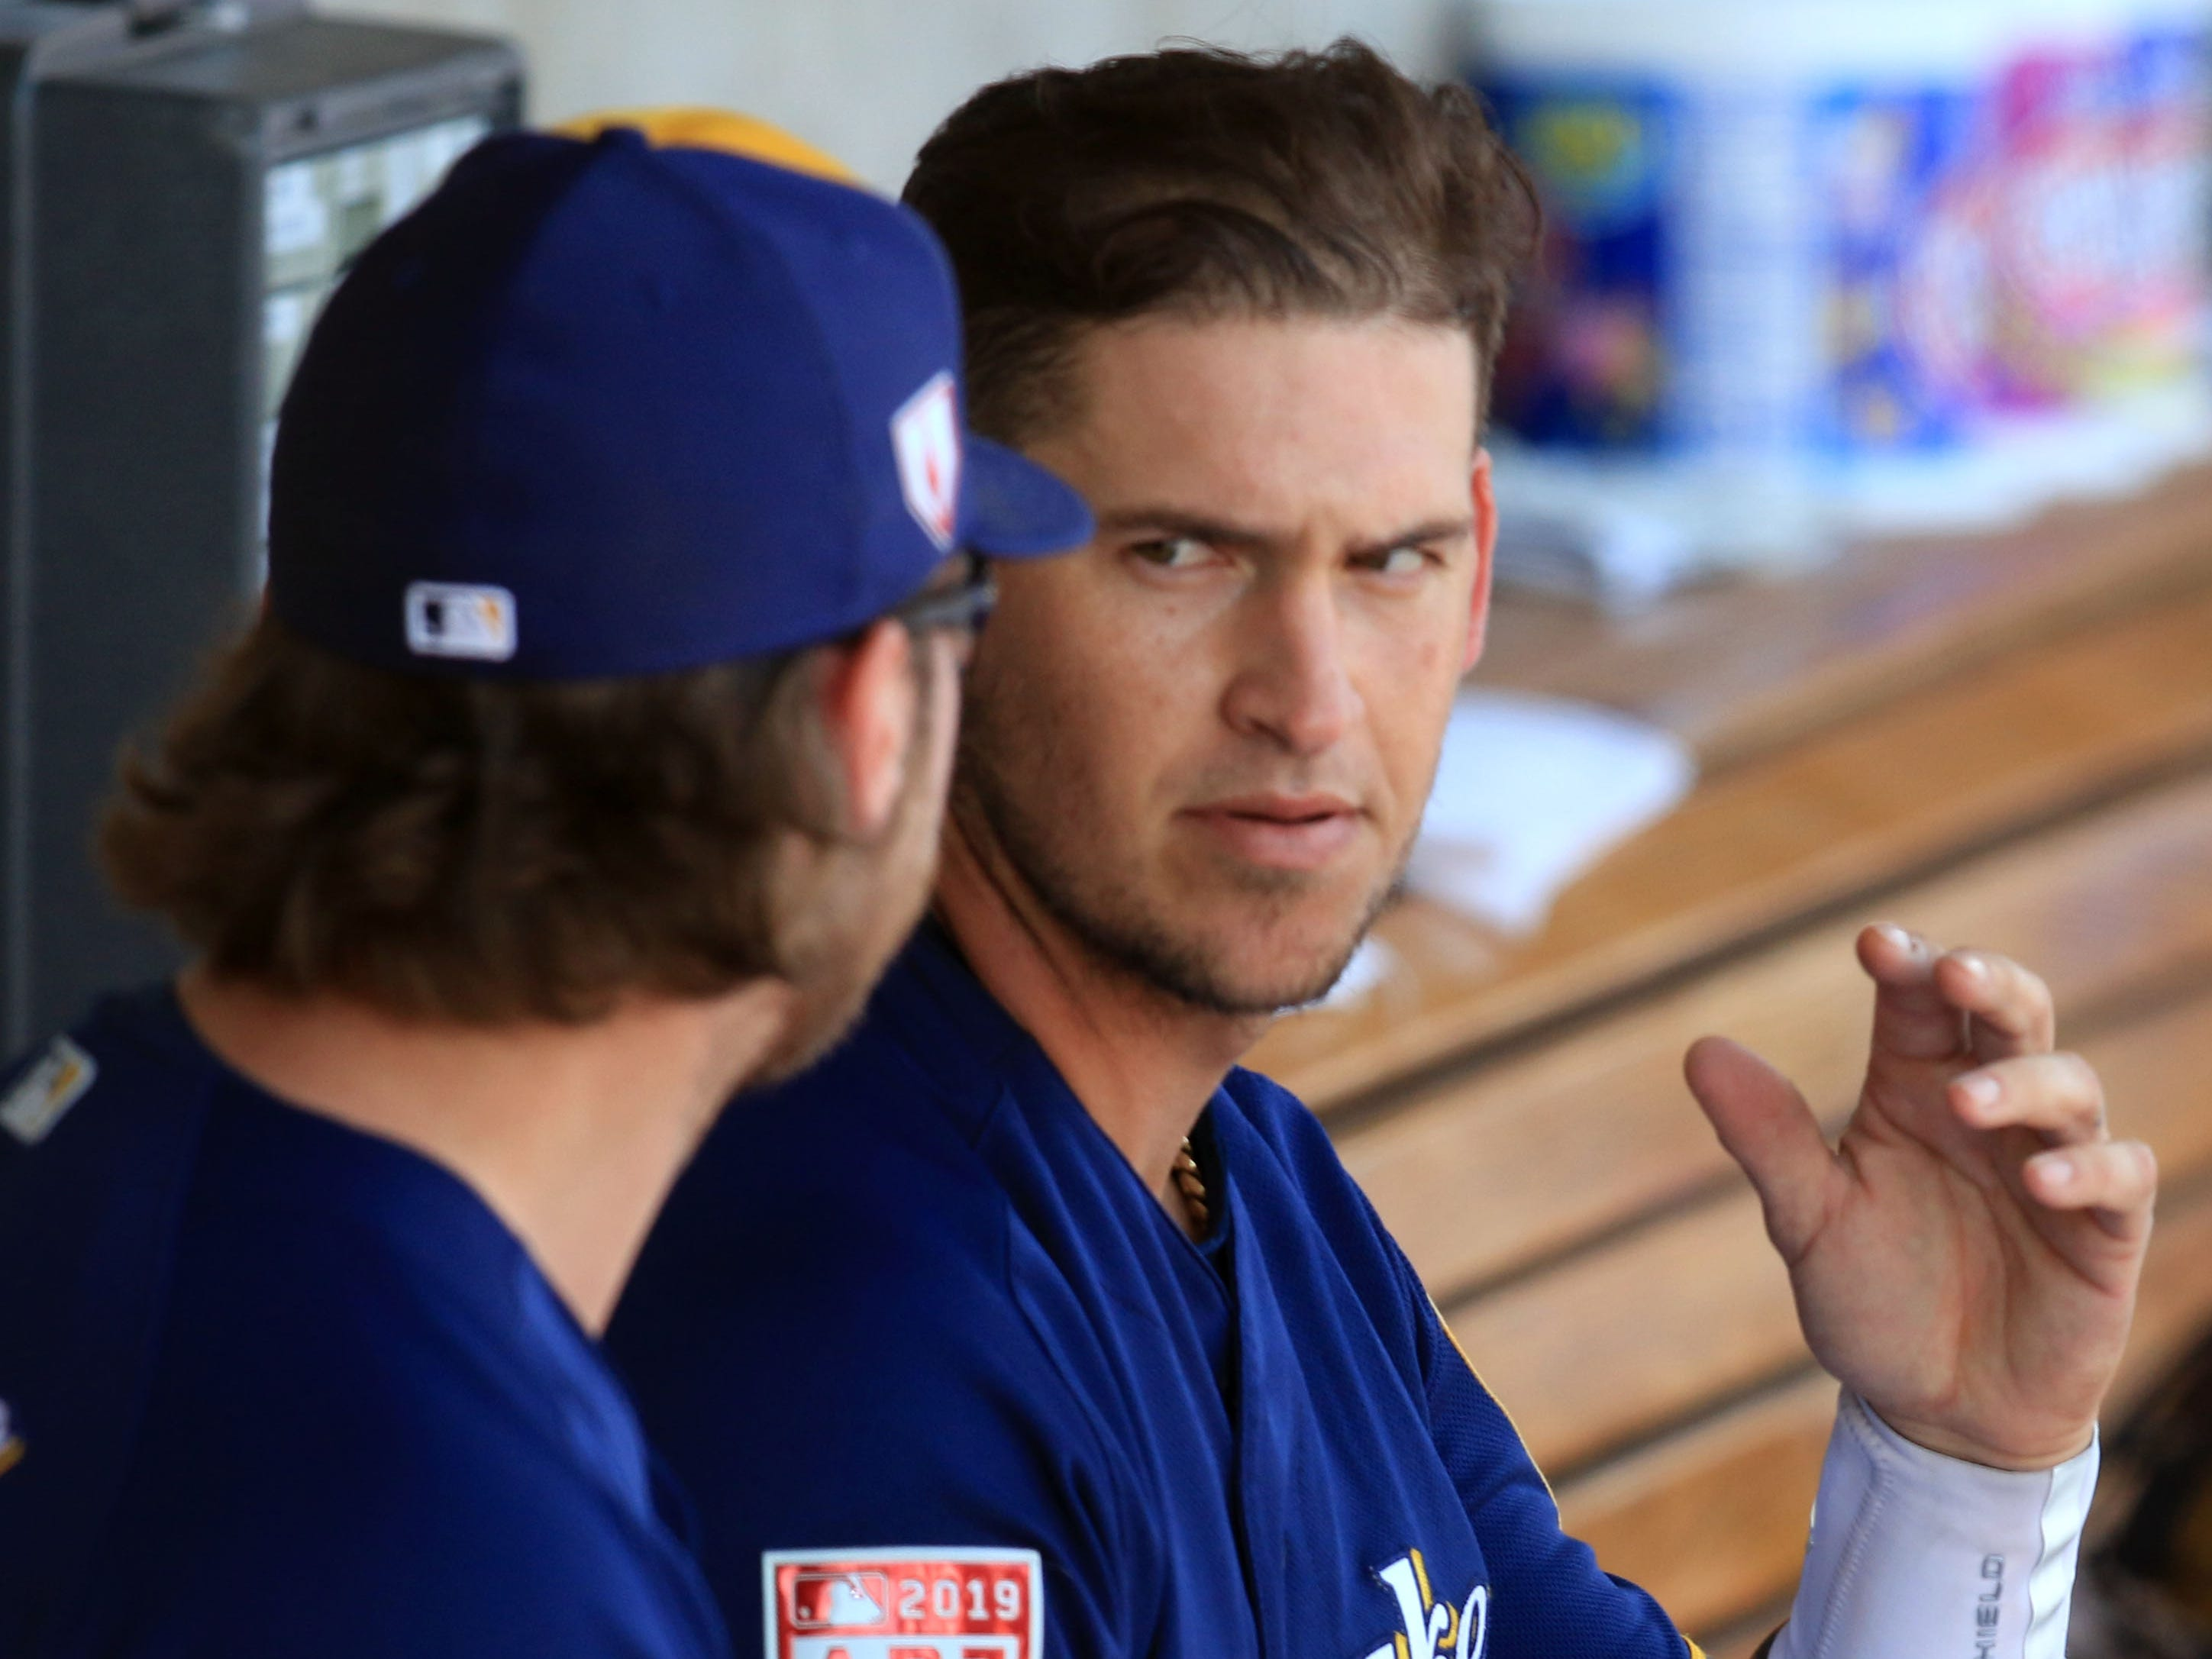 Catcher Yasmani Grandal (right) and starting pitcher Corbin Burnes chat in the Brewers dugout between innings Thursday.